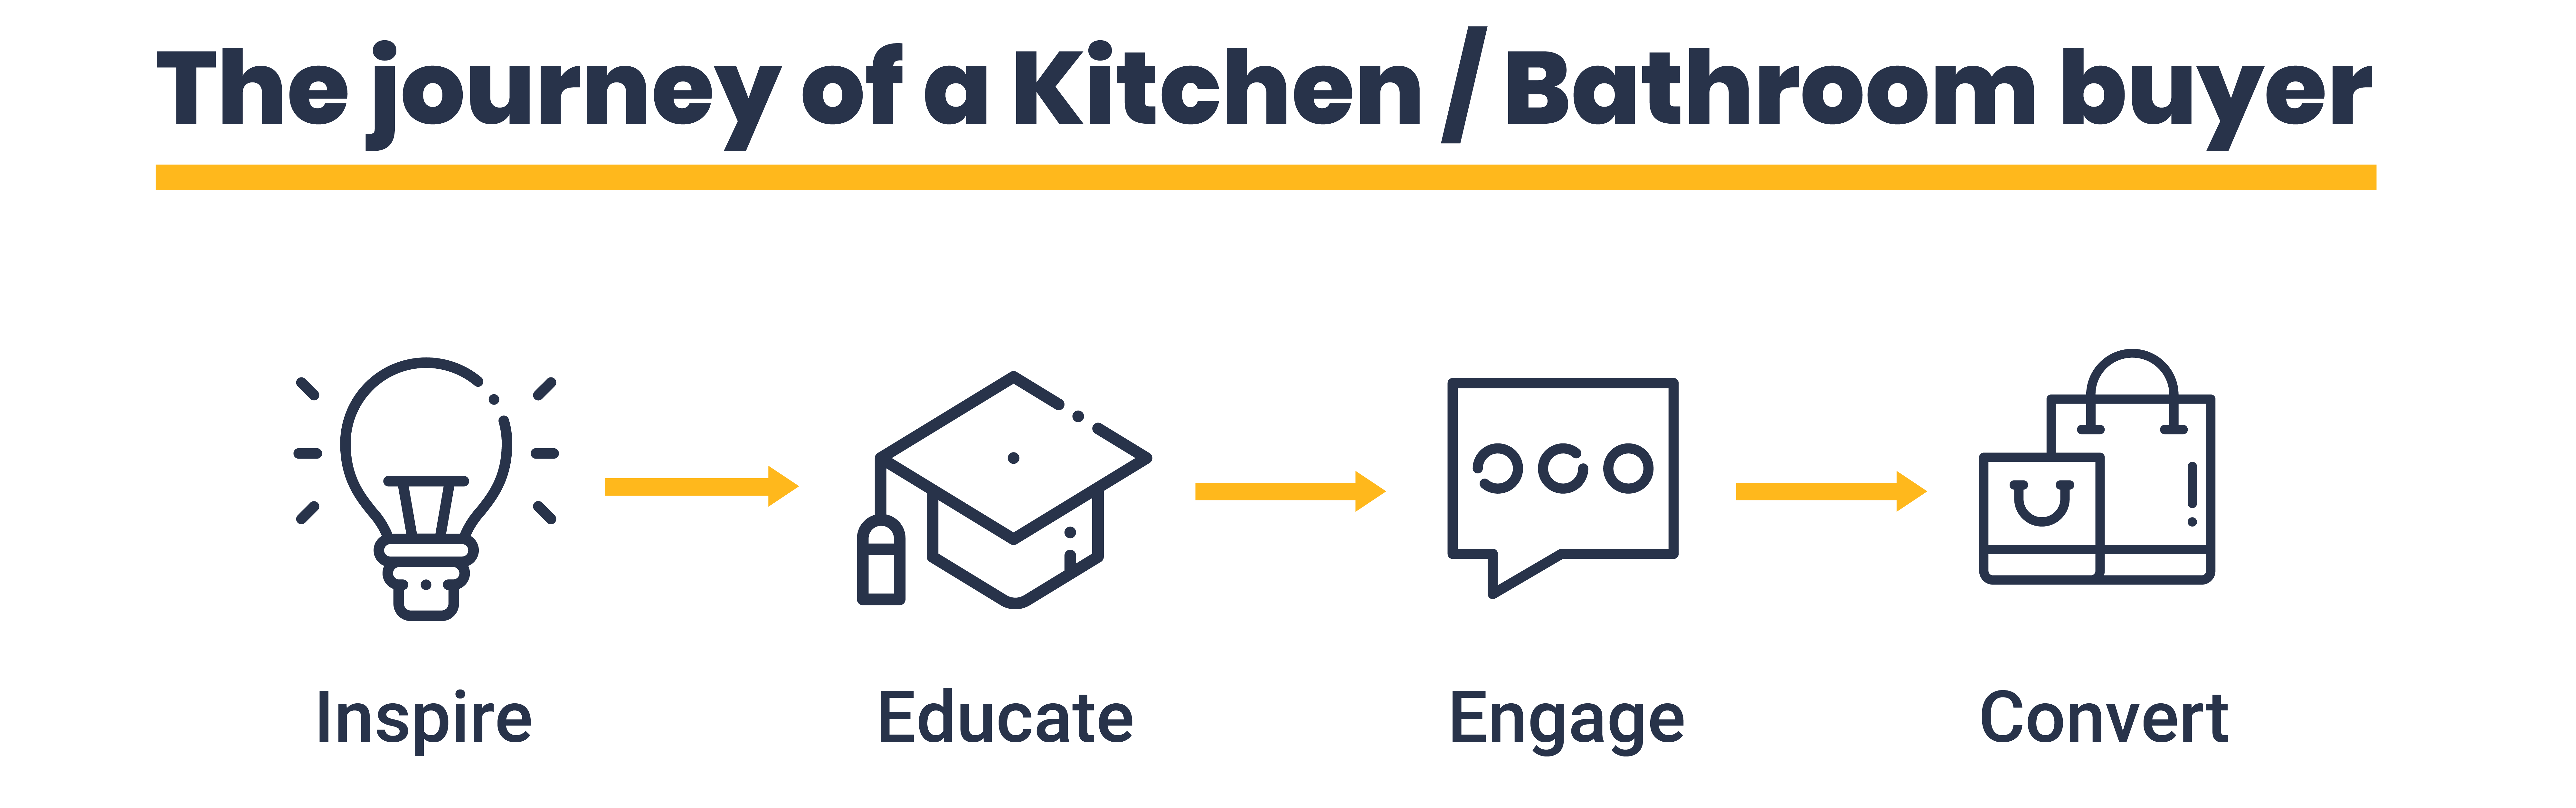 The journey of a bathroom and kitchen buyer